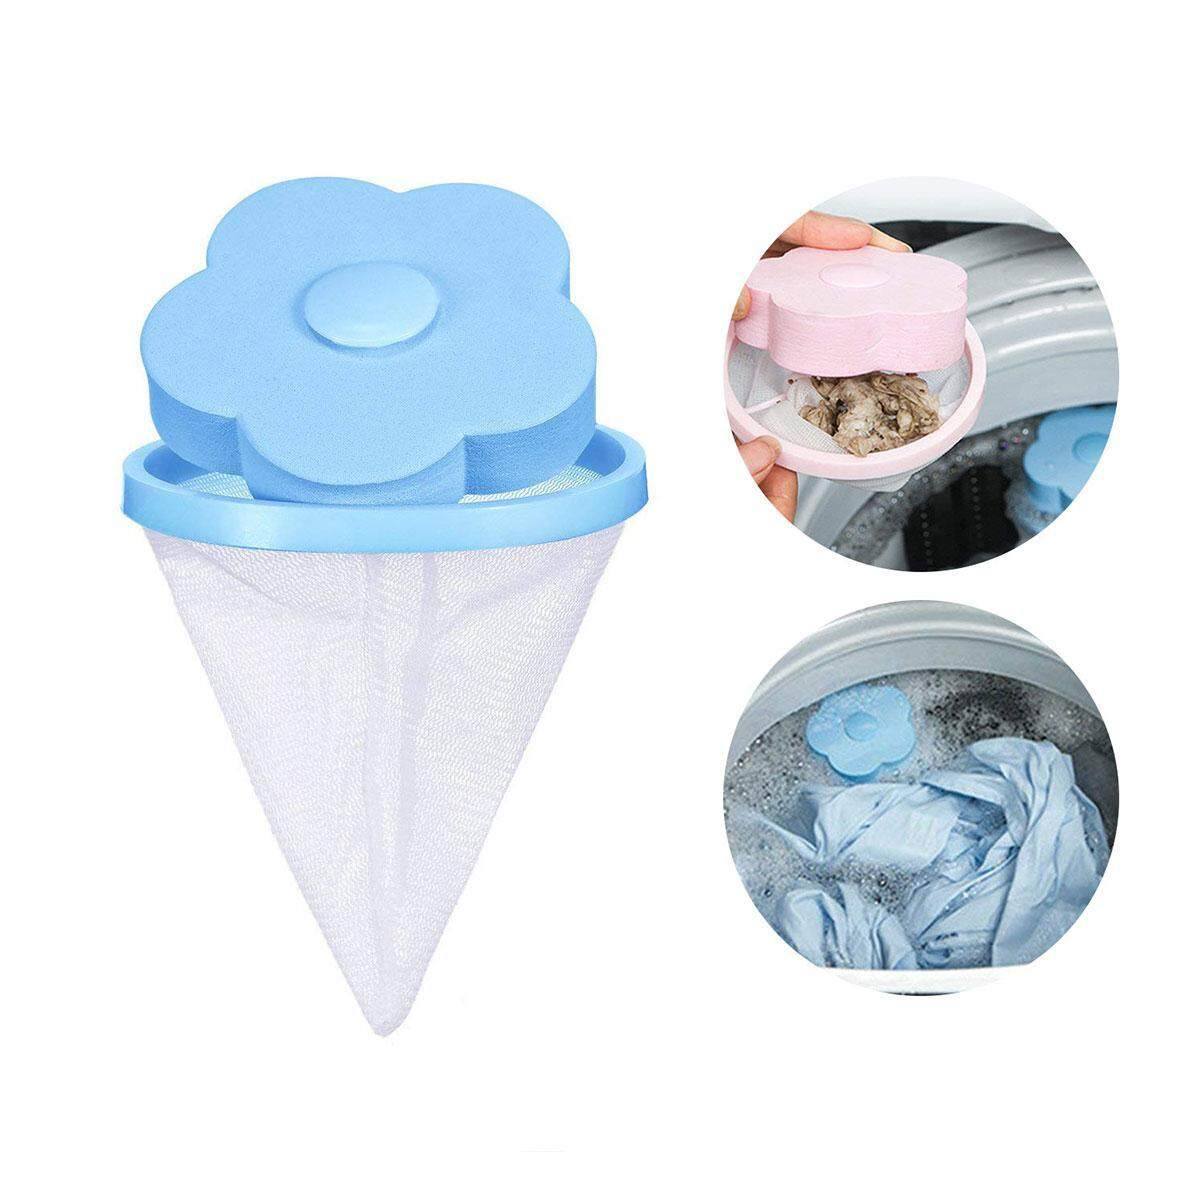 Goodgreat Reusable Washing Machine Hair Removal Laundry Ball Floating Washing Machine Lint Mesh Bag Hair Catcher Filter Net Pouch,1 Pcs By Good&great.